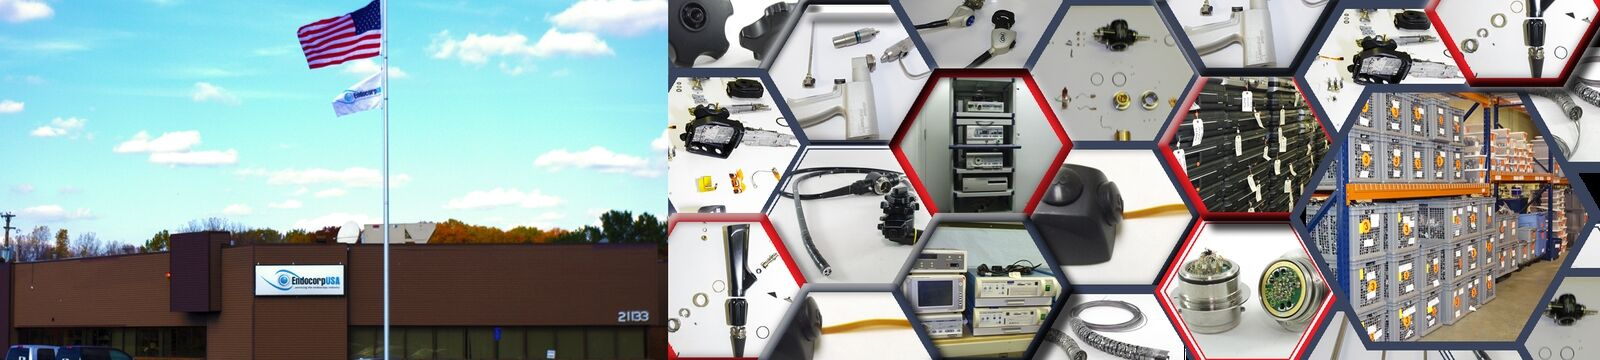 EndocorpUSA Endoscopes & Equipment